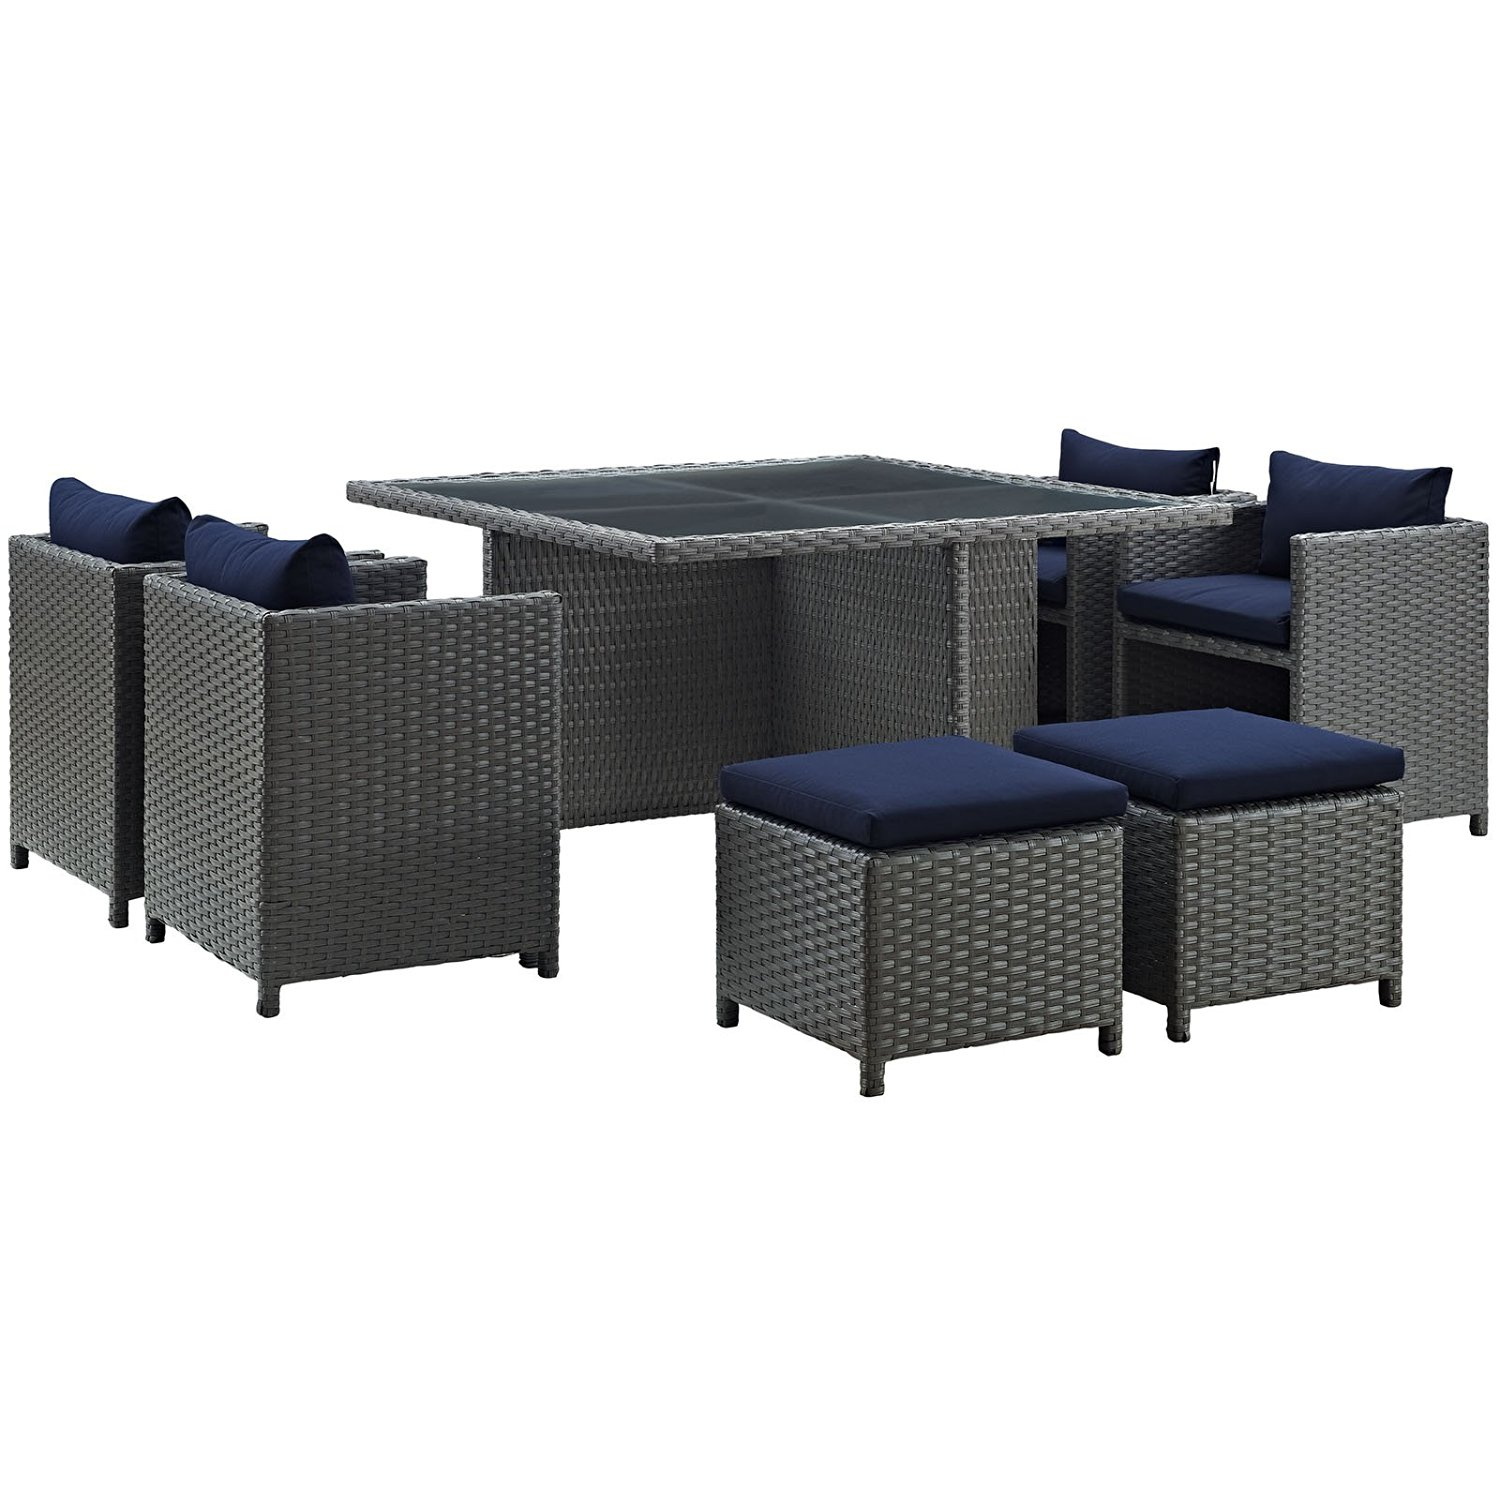 Modway Sojourn 9 Piece Outdoor Patio Dining Set With Sunbrella Brand Navy  Canvas Cushions